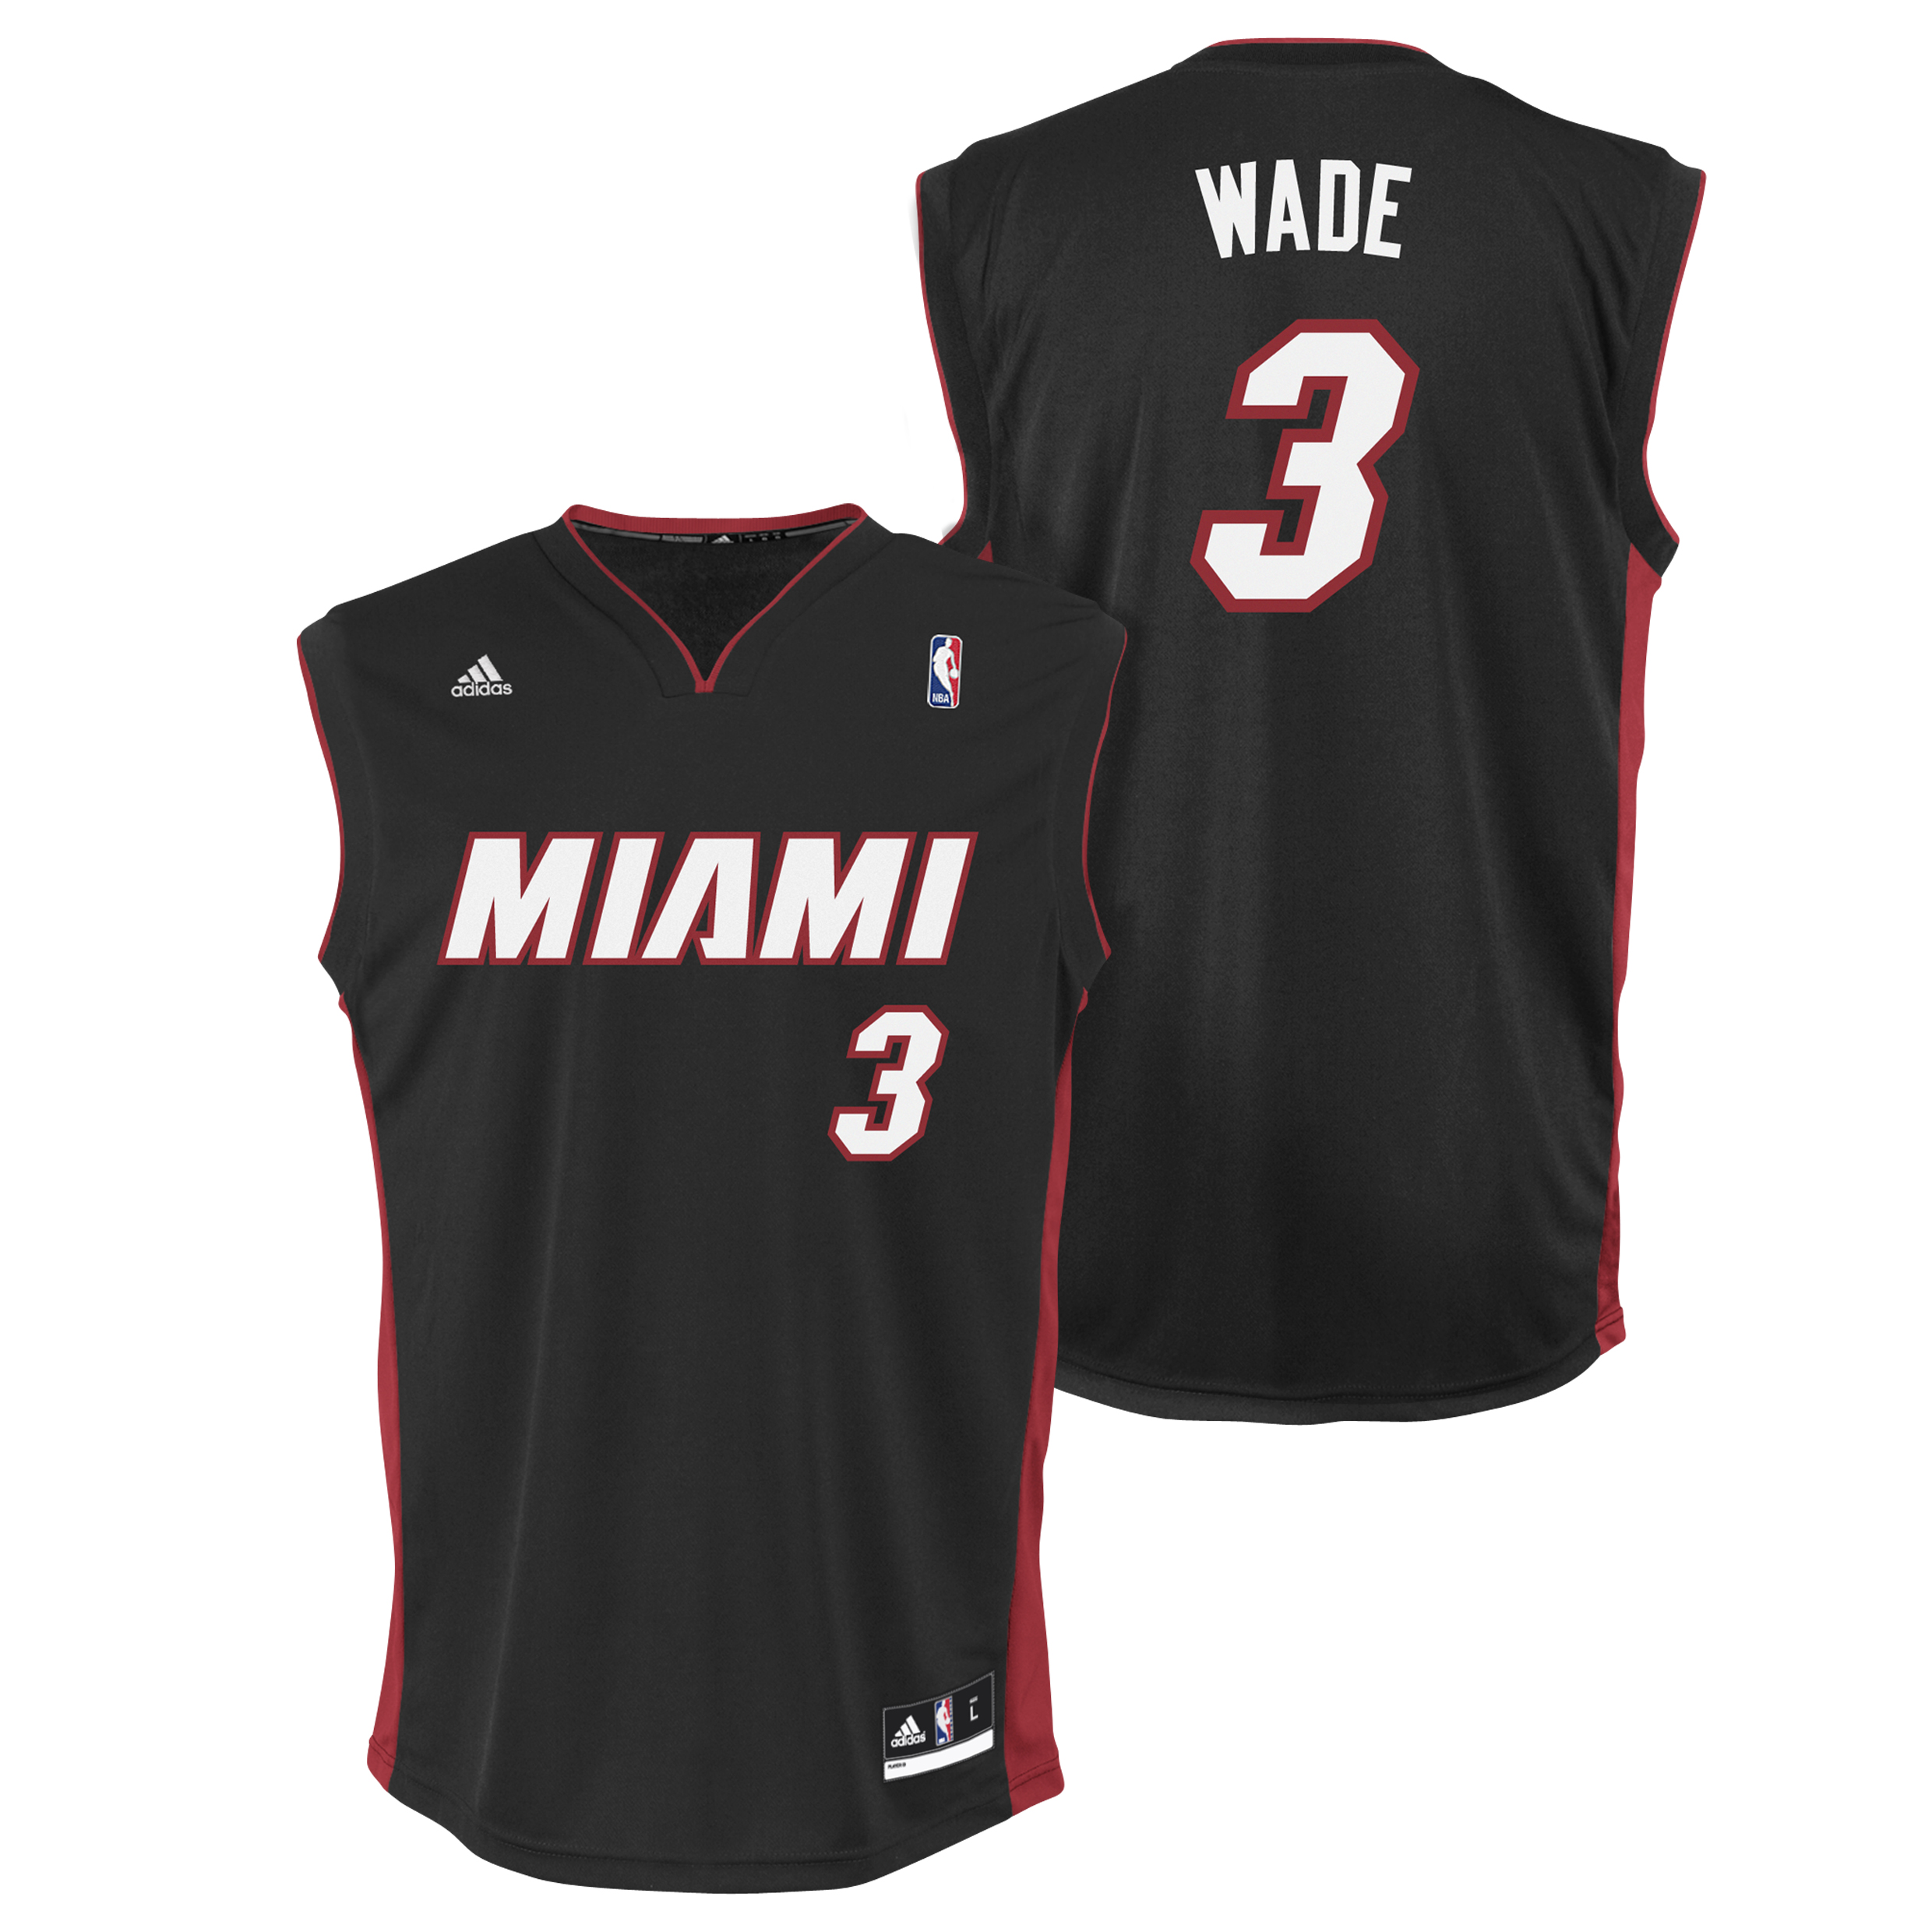 Miami Heat Road Replica Jersey - Dwayne Wade - Mens